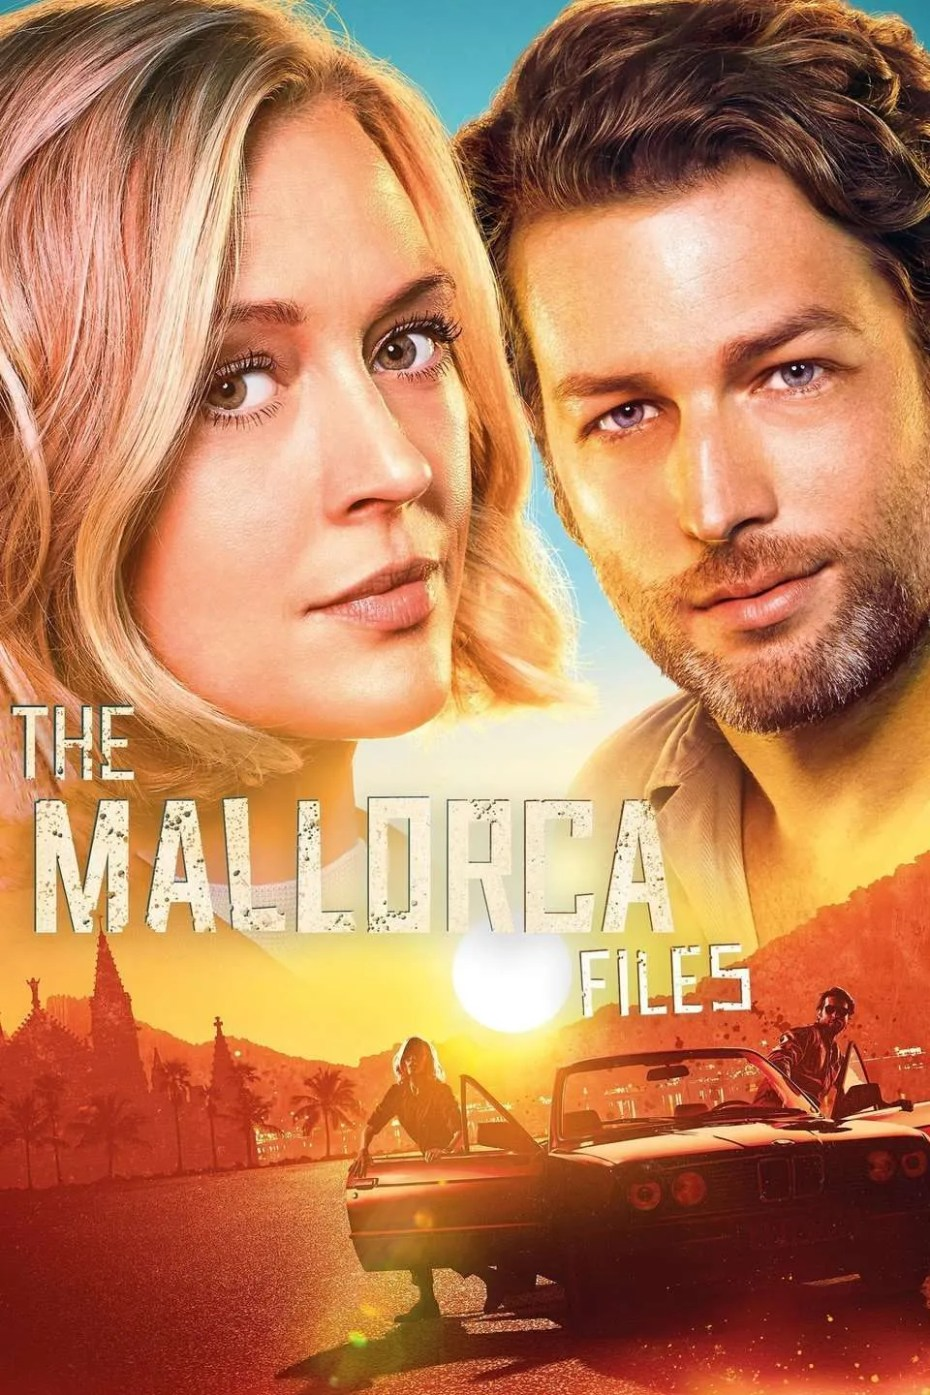 The Mallorca Files